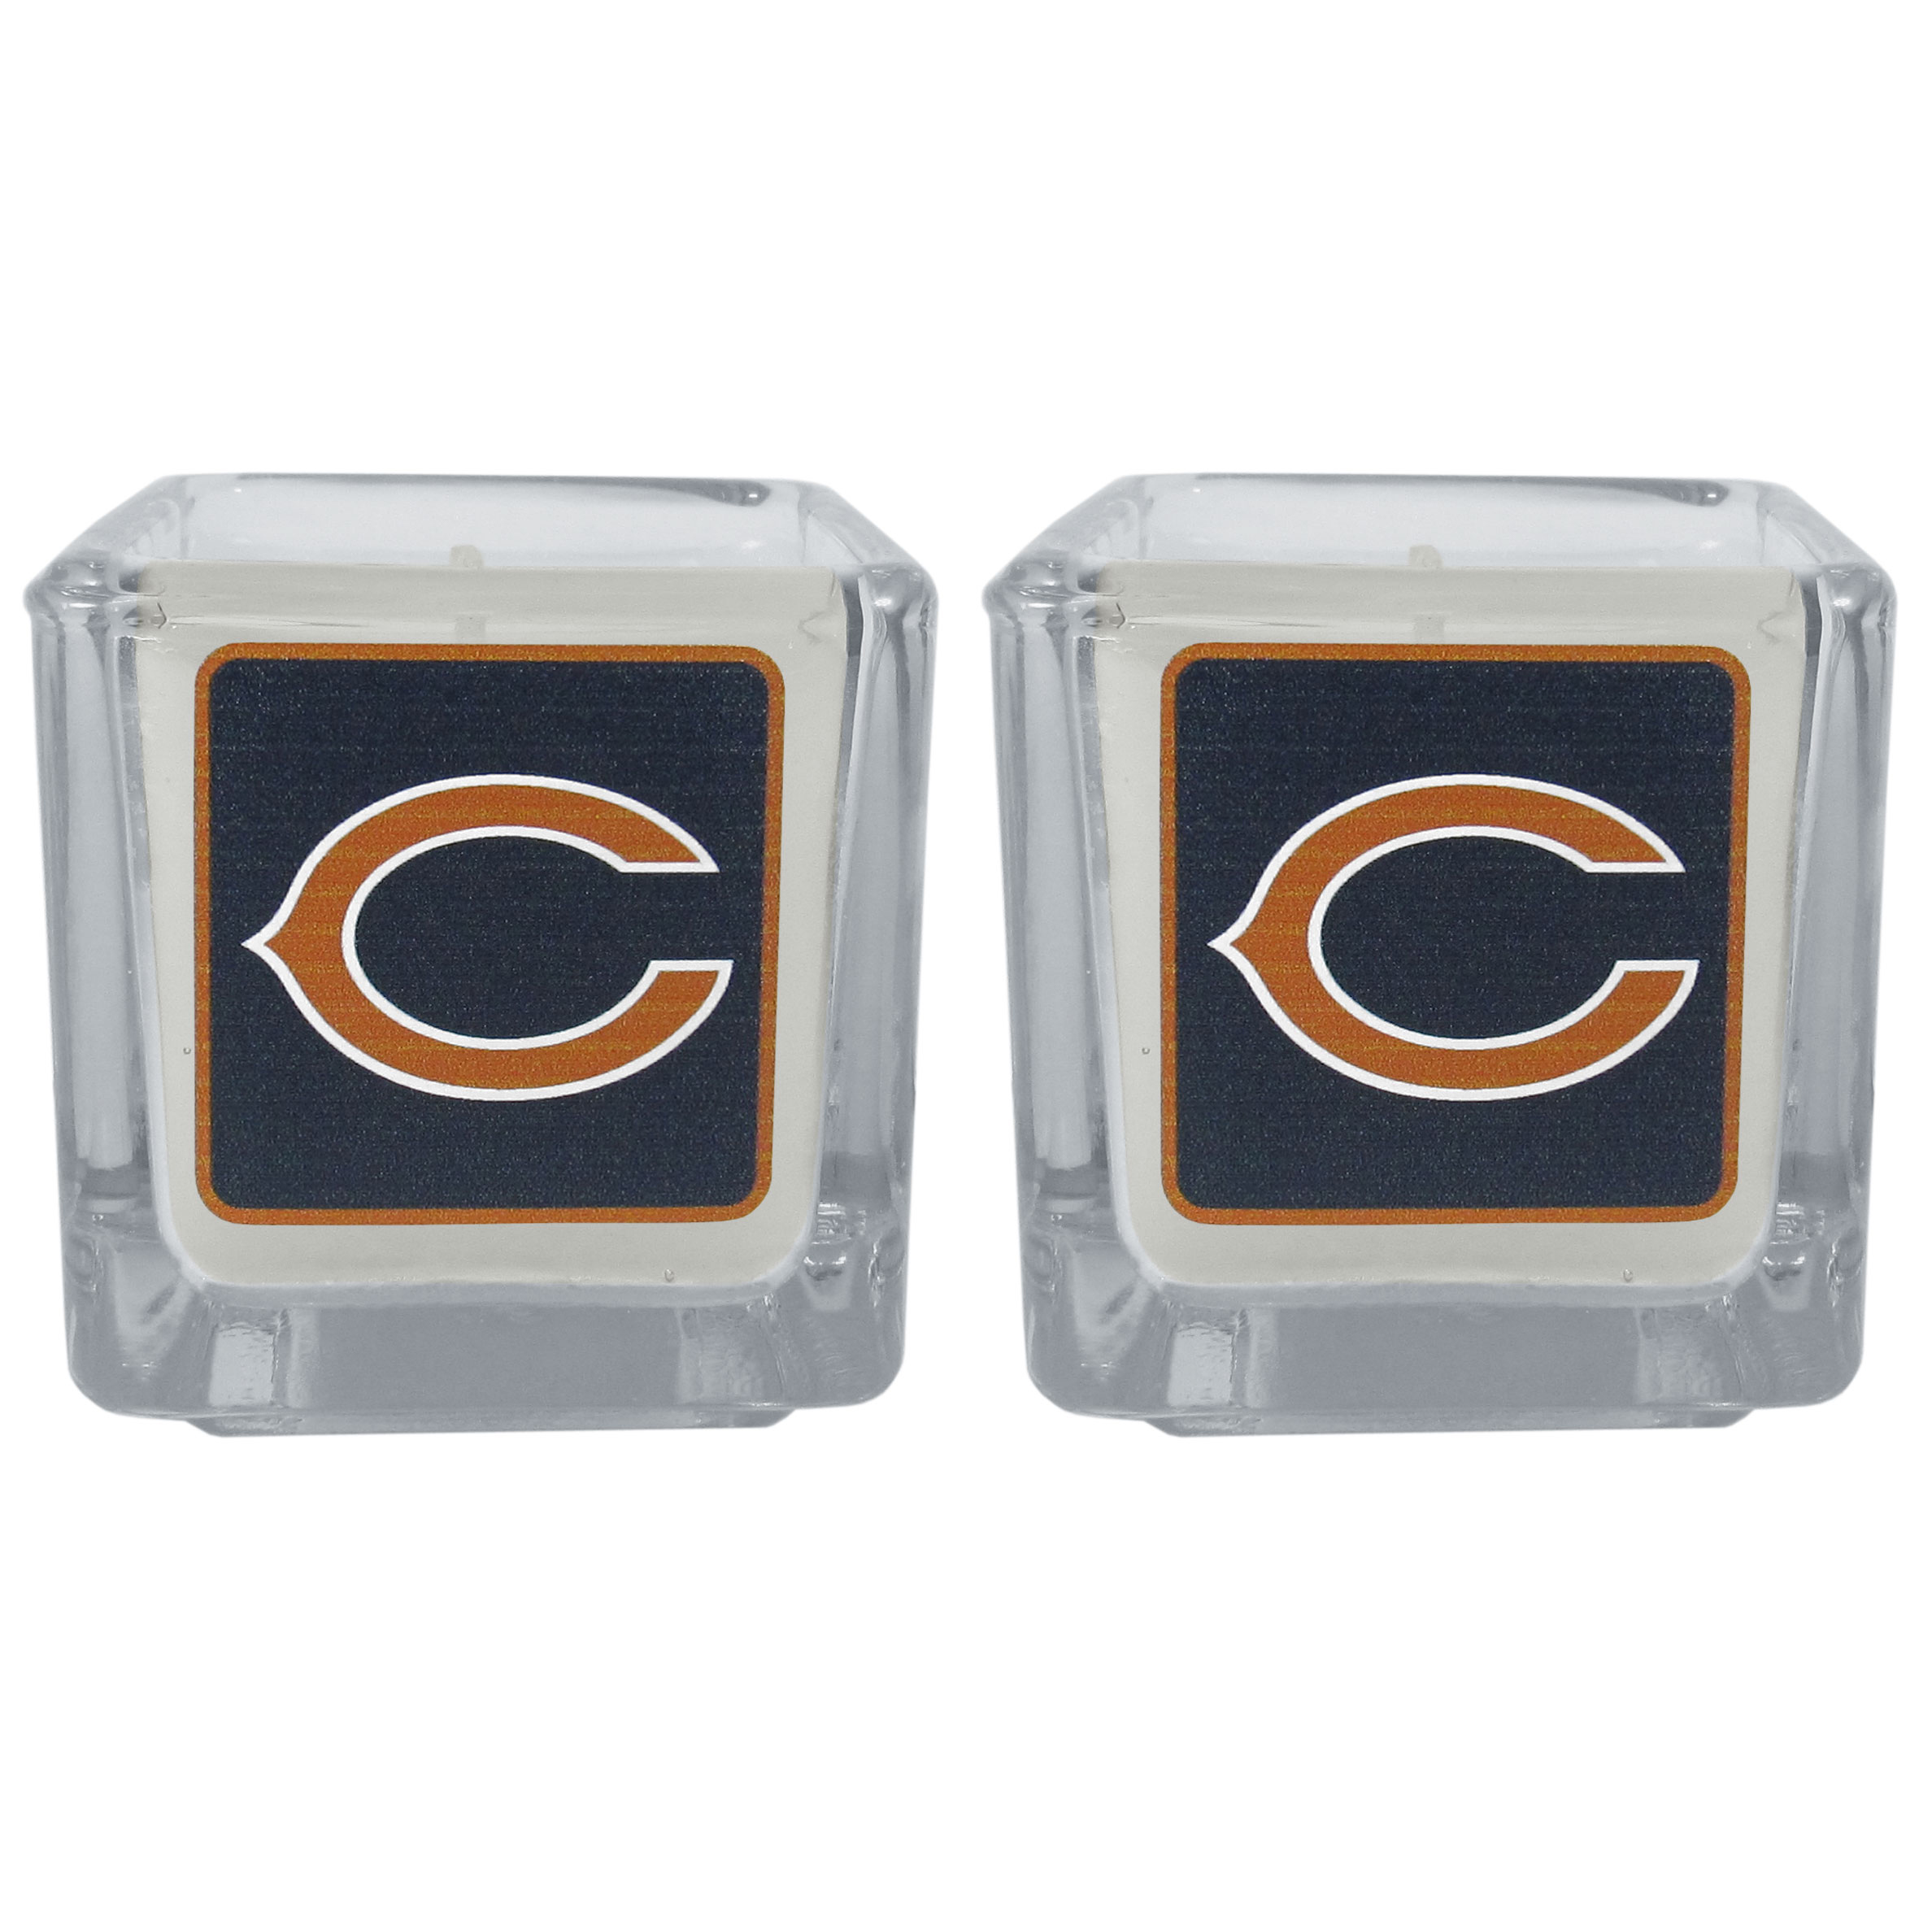 Chicago Bears Graphics Candle Set - Our candle set features 2 lightly vanilla scented candles with the Chicago Bears logo expertly printed on front. The candles are 2 inches tall in the votive style.